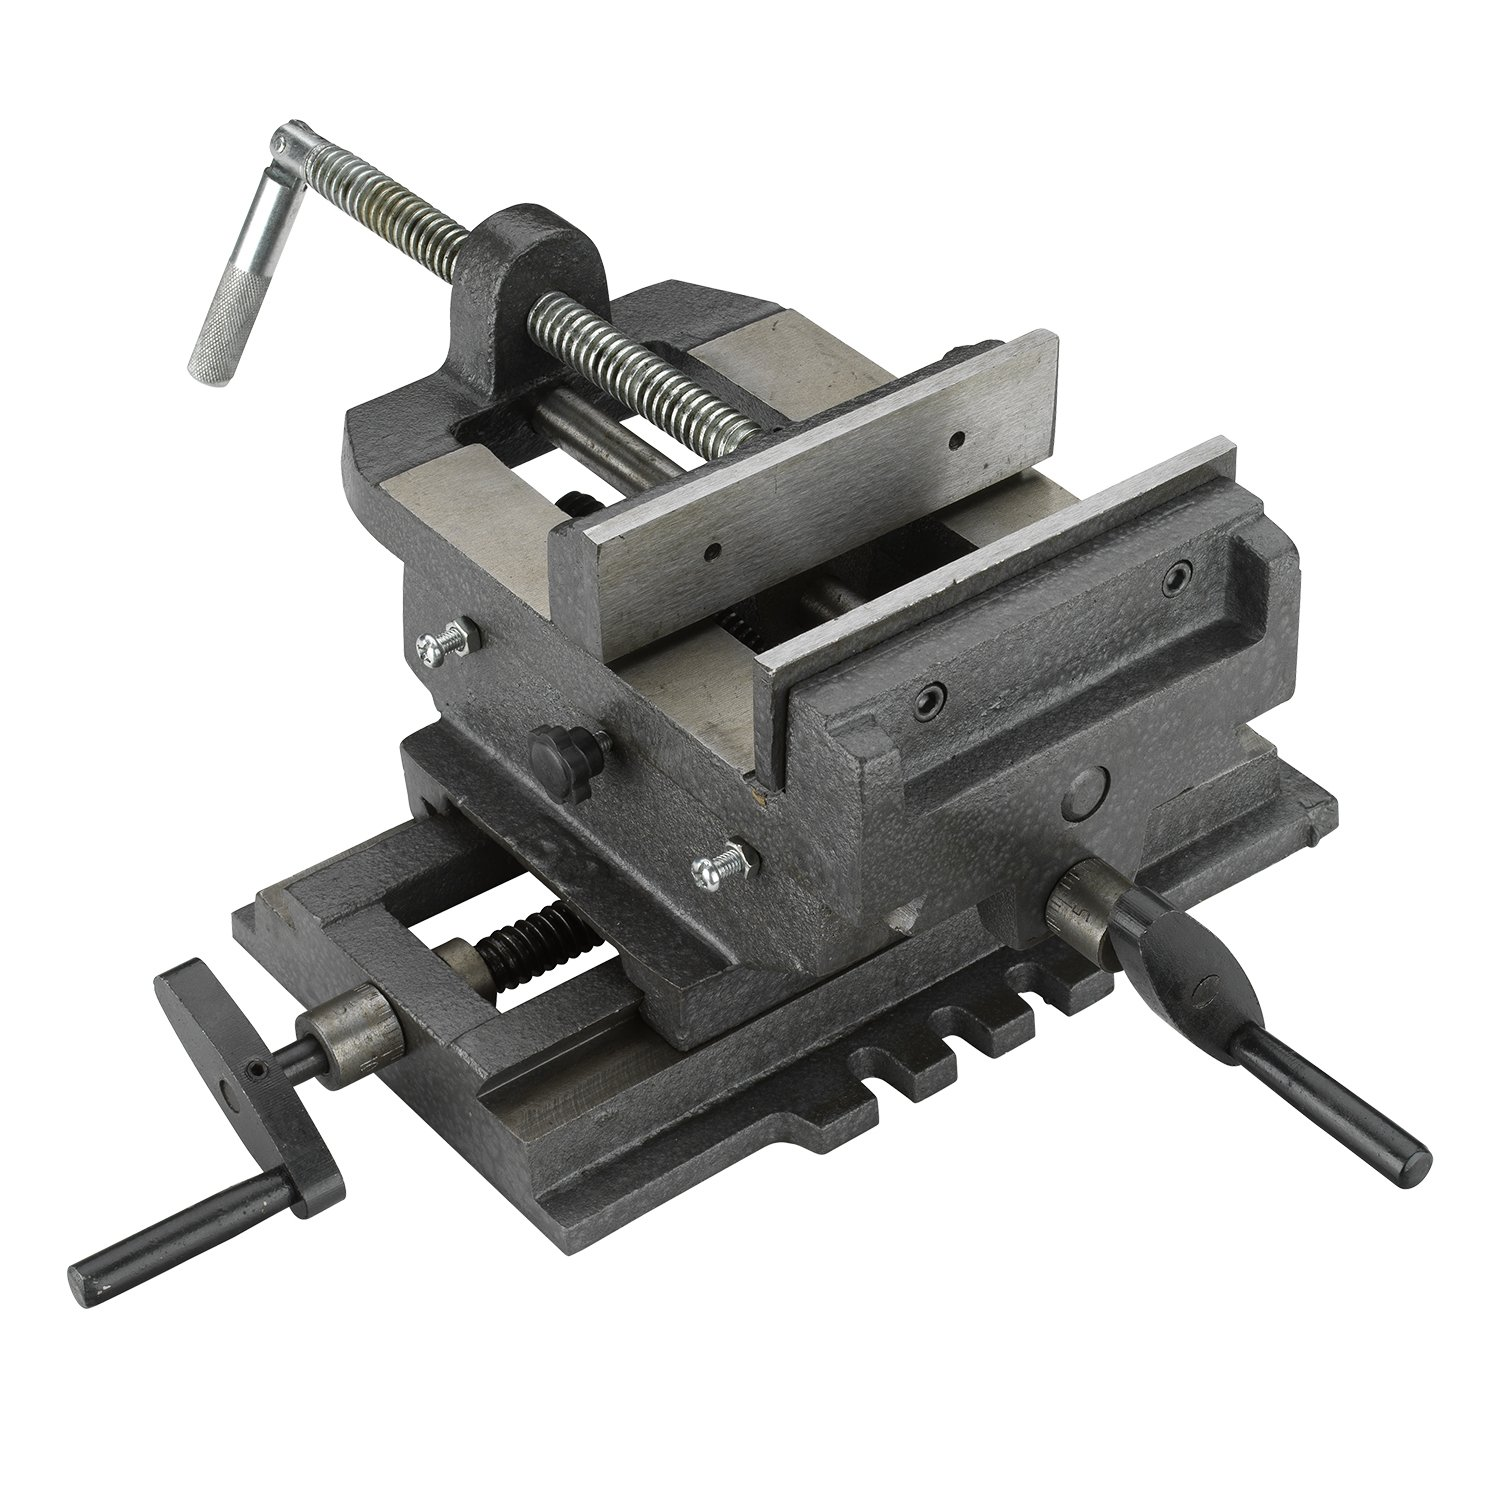 Hiltex 55091 4'' Cross Slide Vise, Heavy Duty | 2-Way X Y Axis Drill Press | For Milling, Machinists